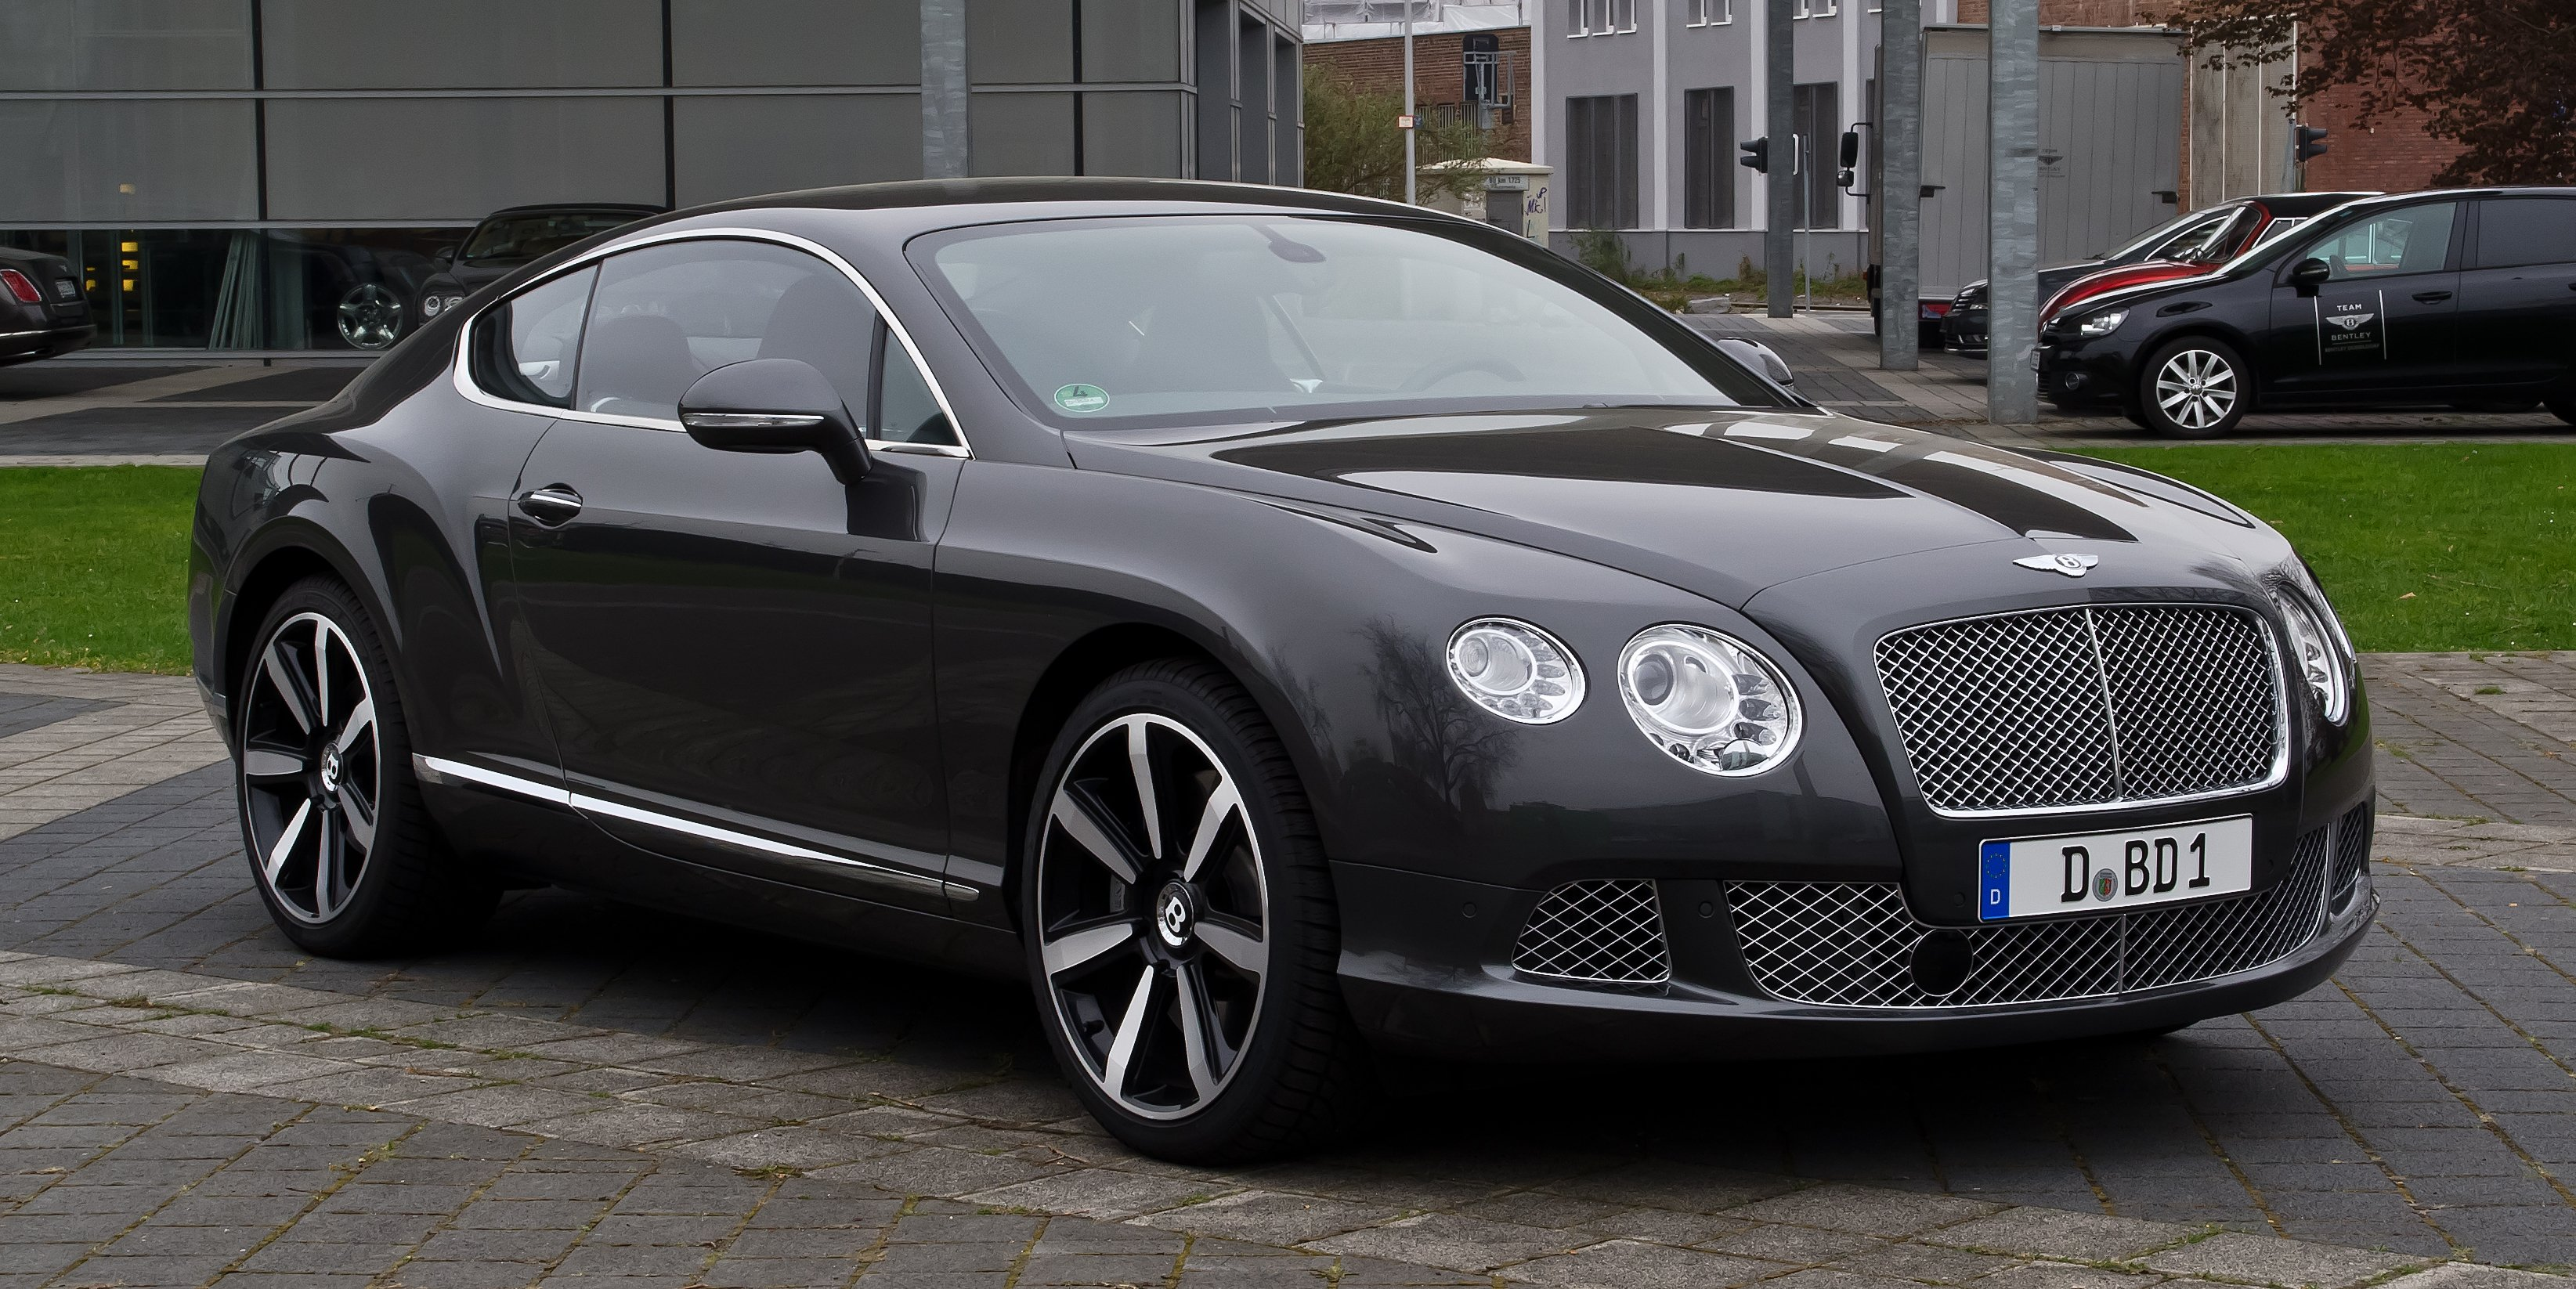 used gear flying for gtc review top reviews sale img car continental bentley spur